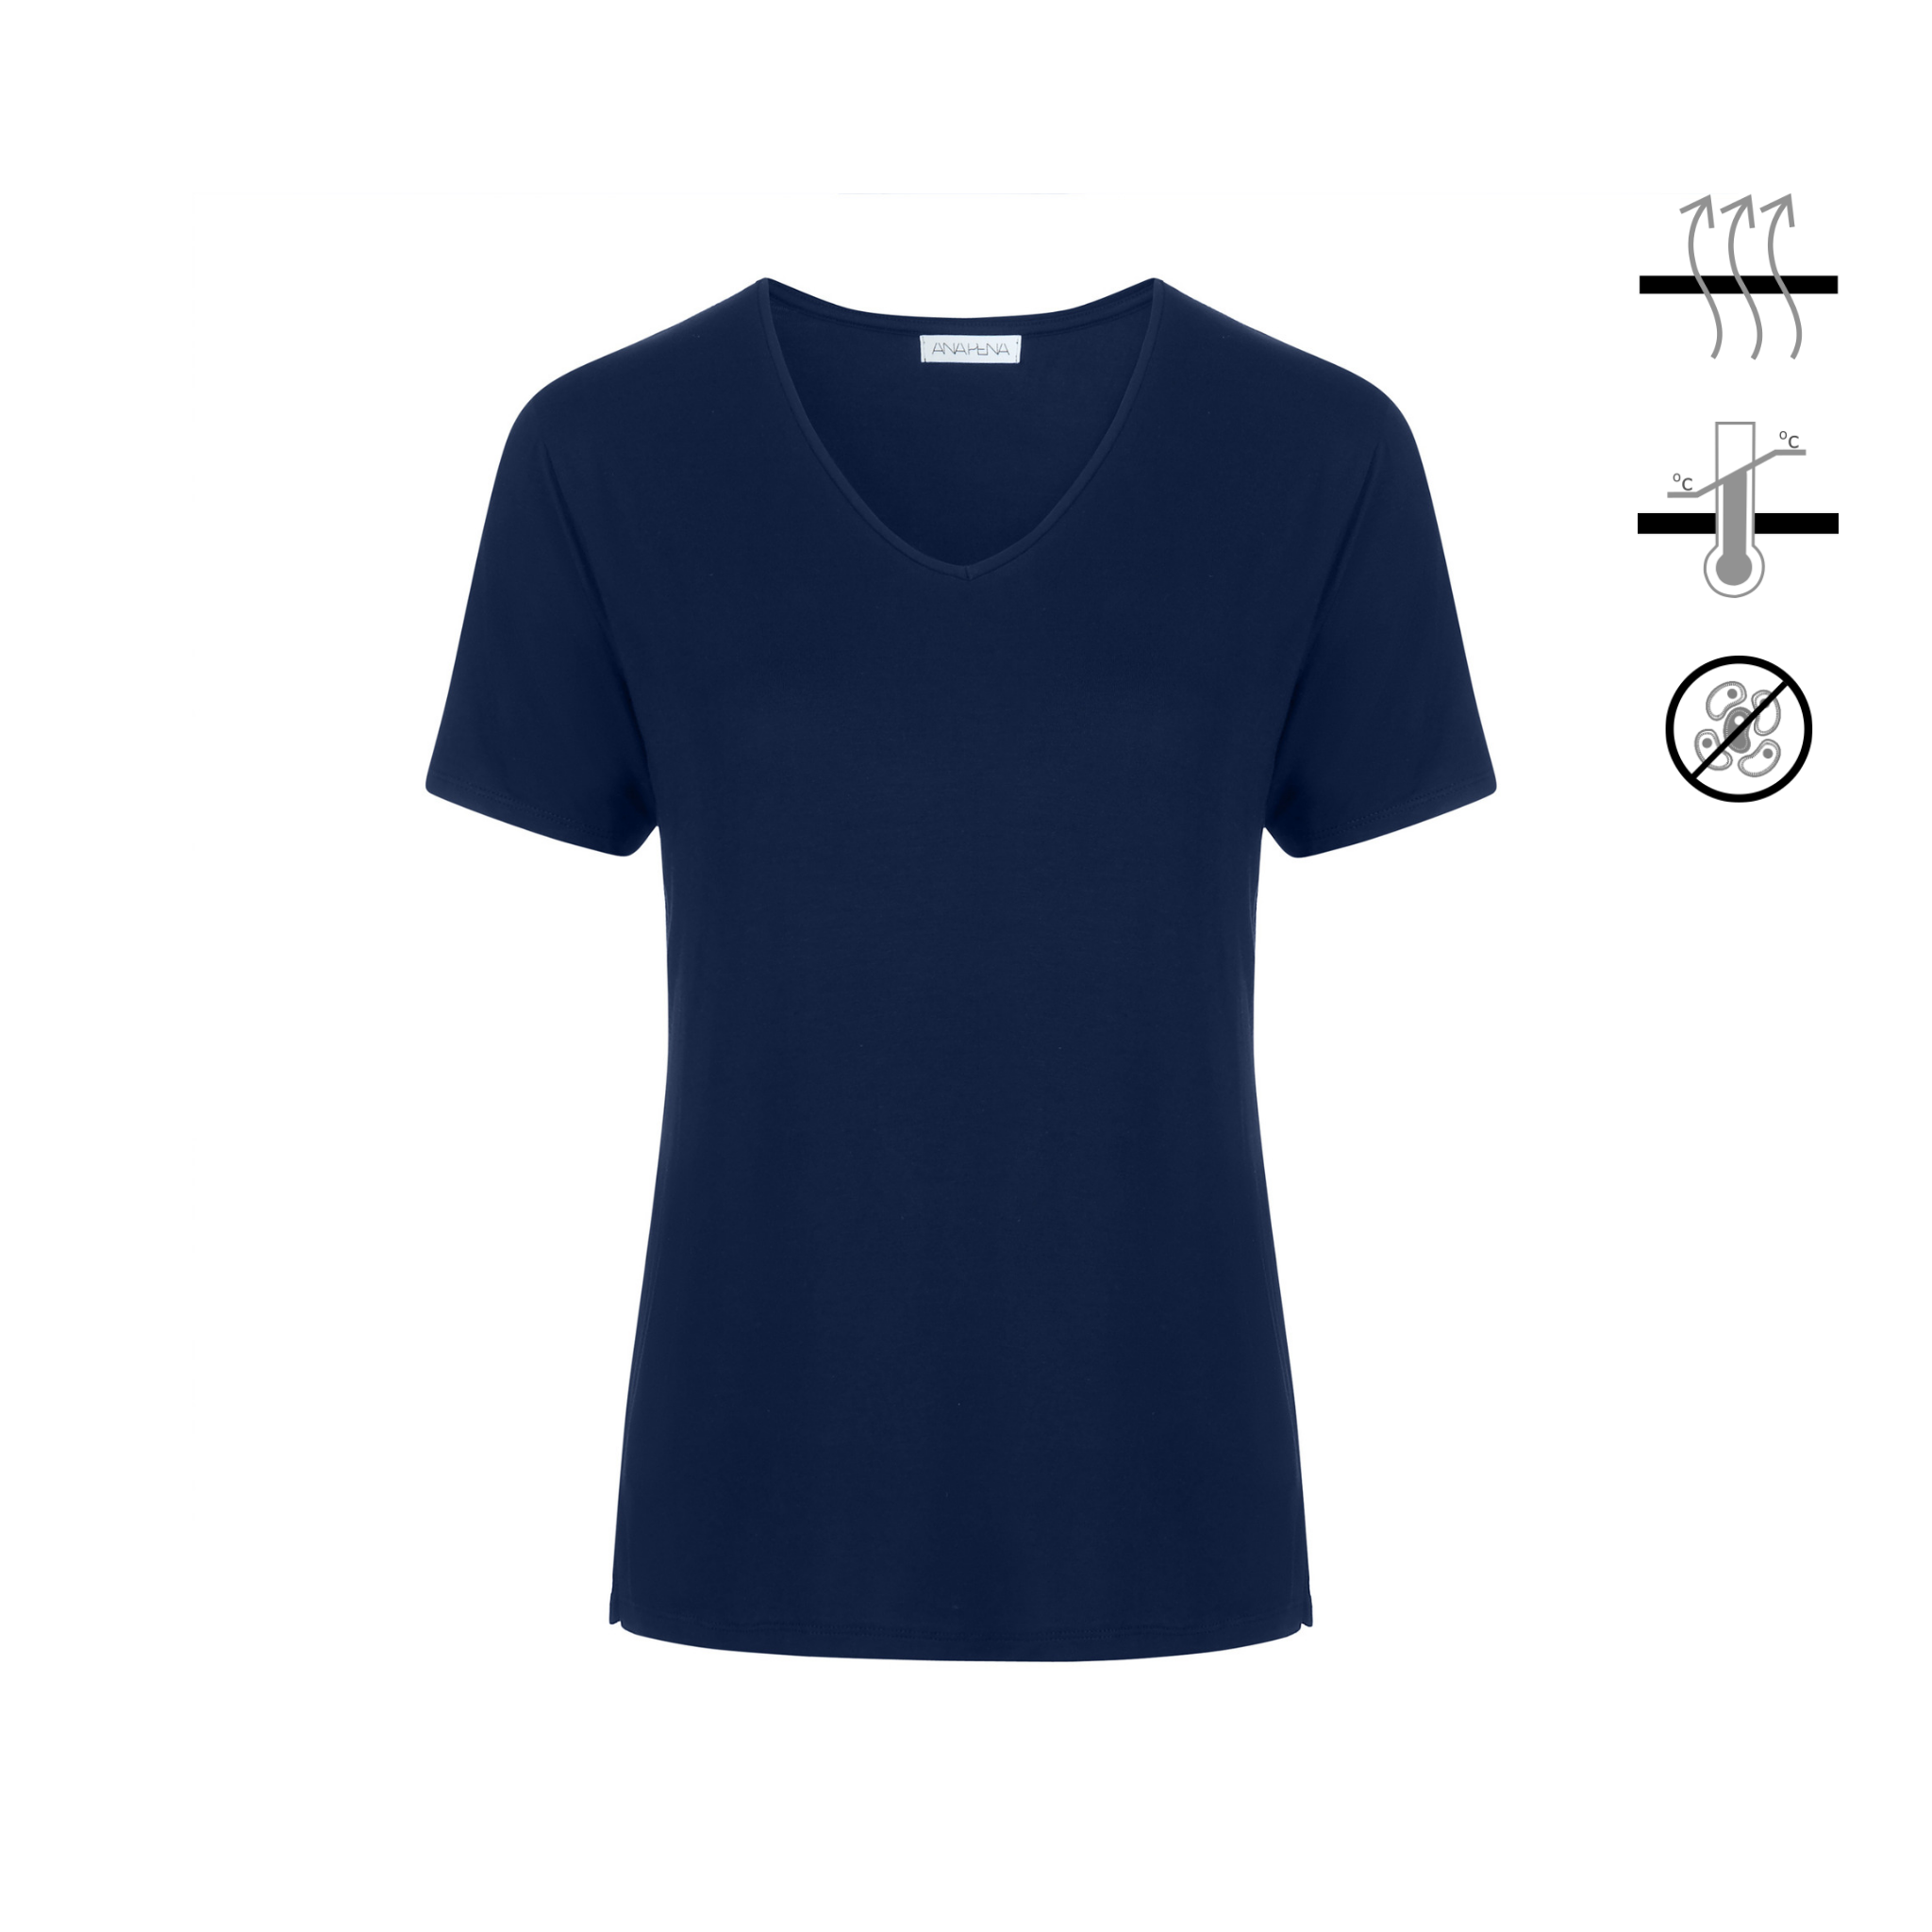 Blue navy short-sleeve t-shirt made of thermo-regulating bamboo